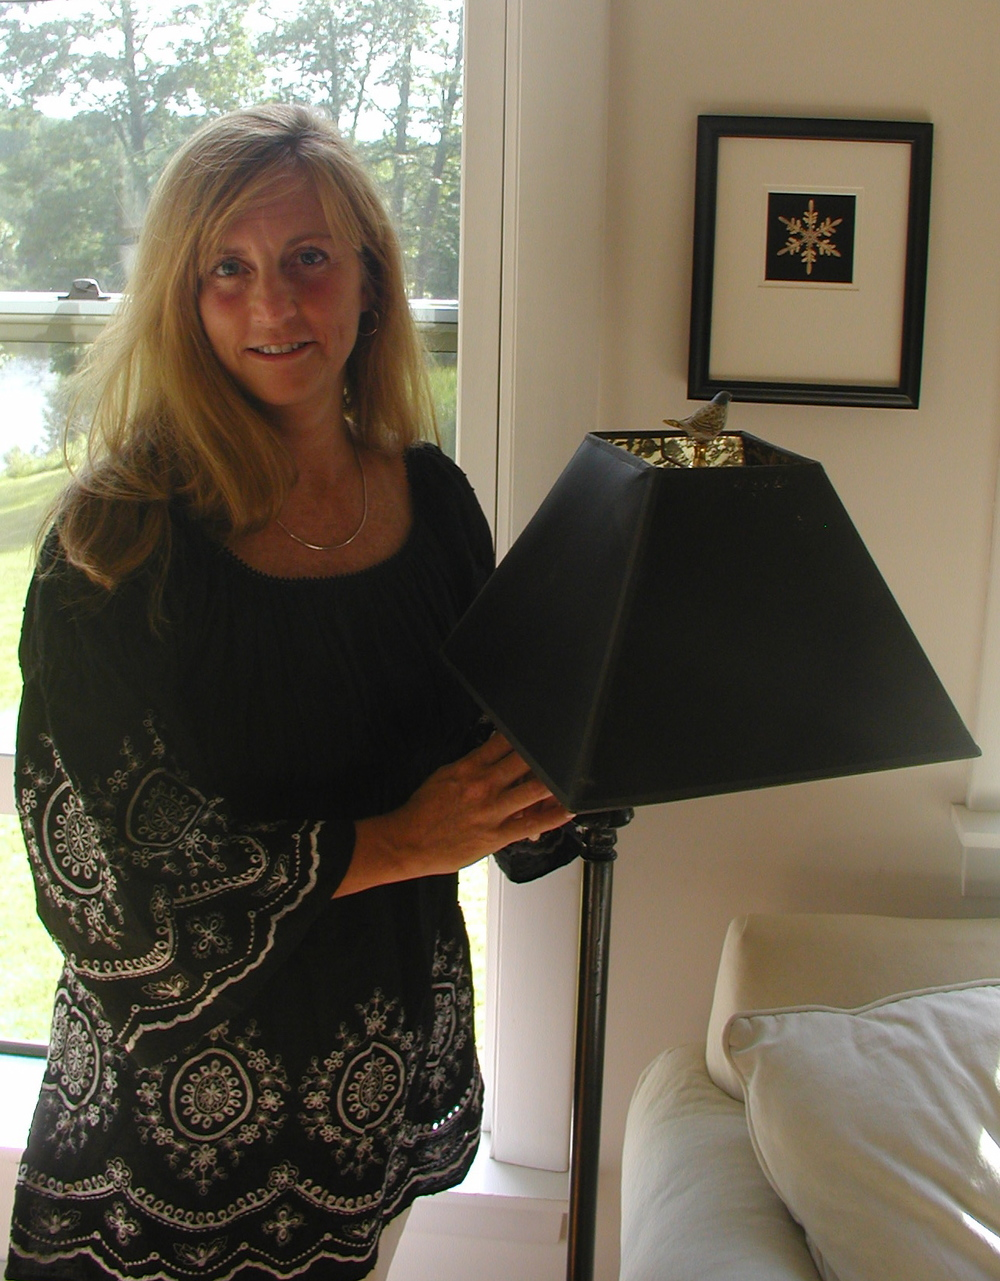 Amy with Lamp.JPG